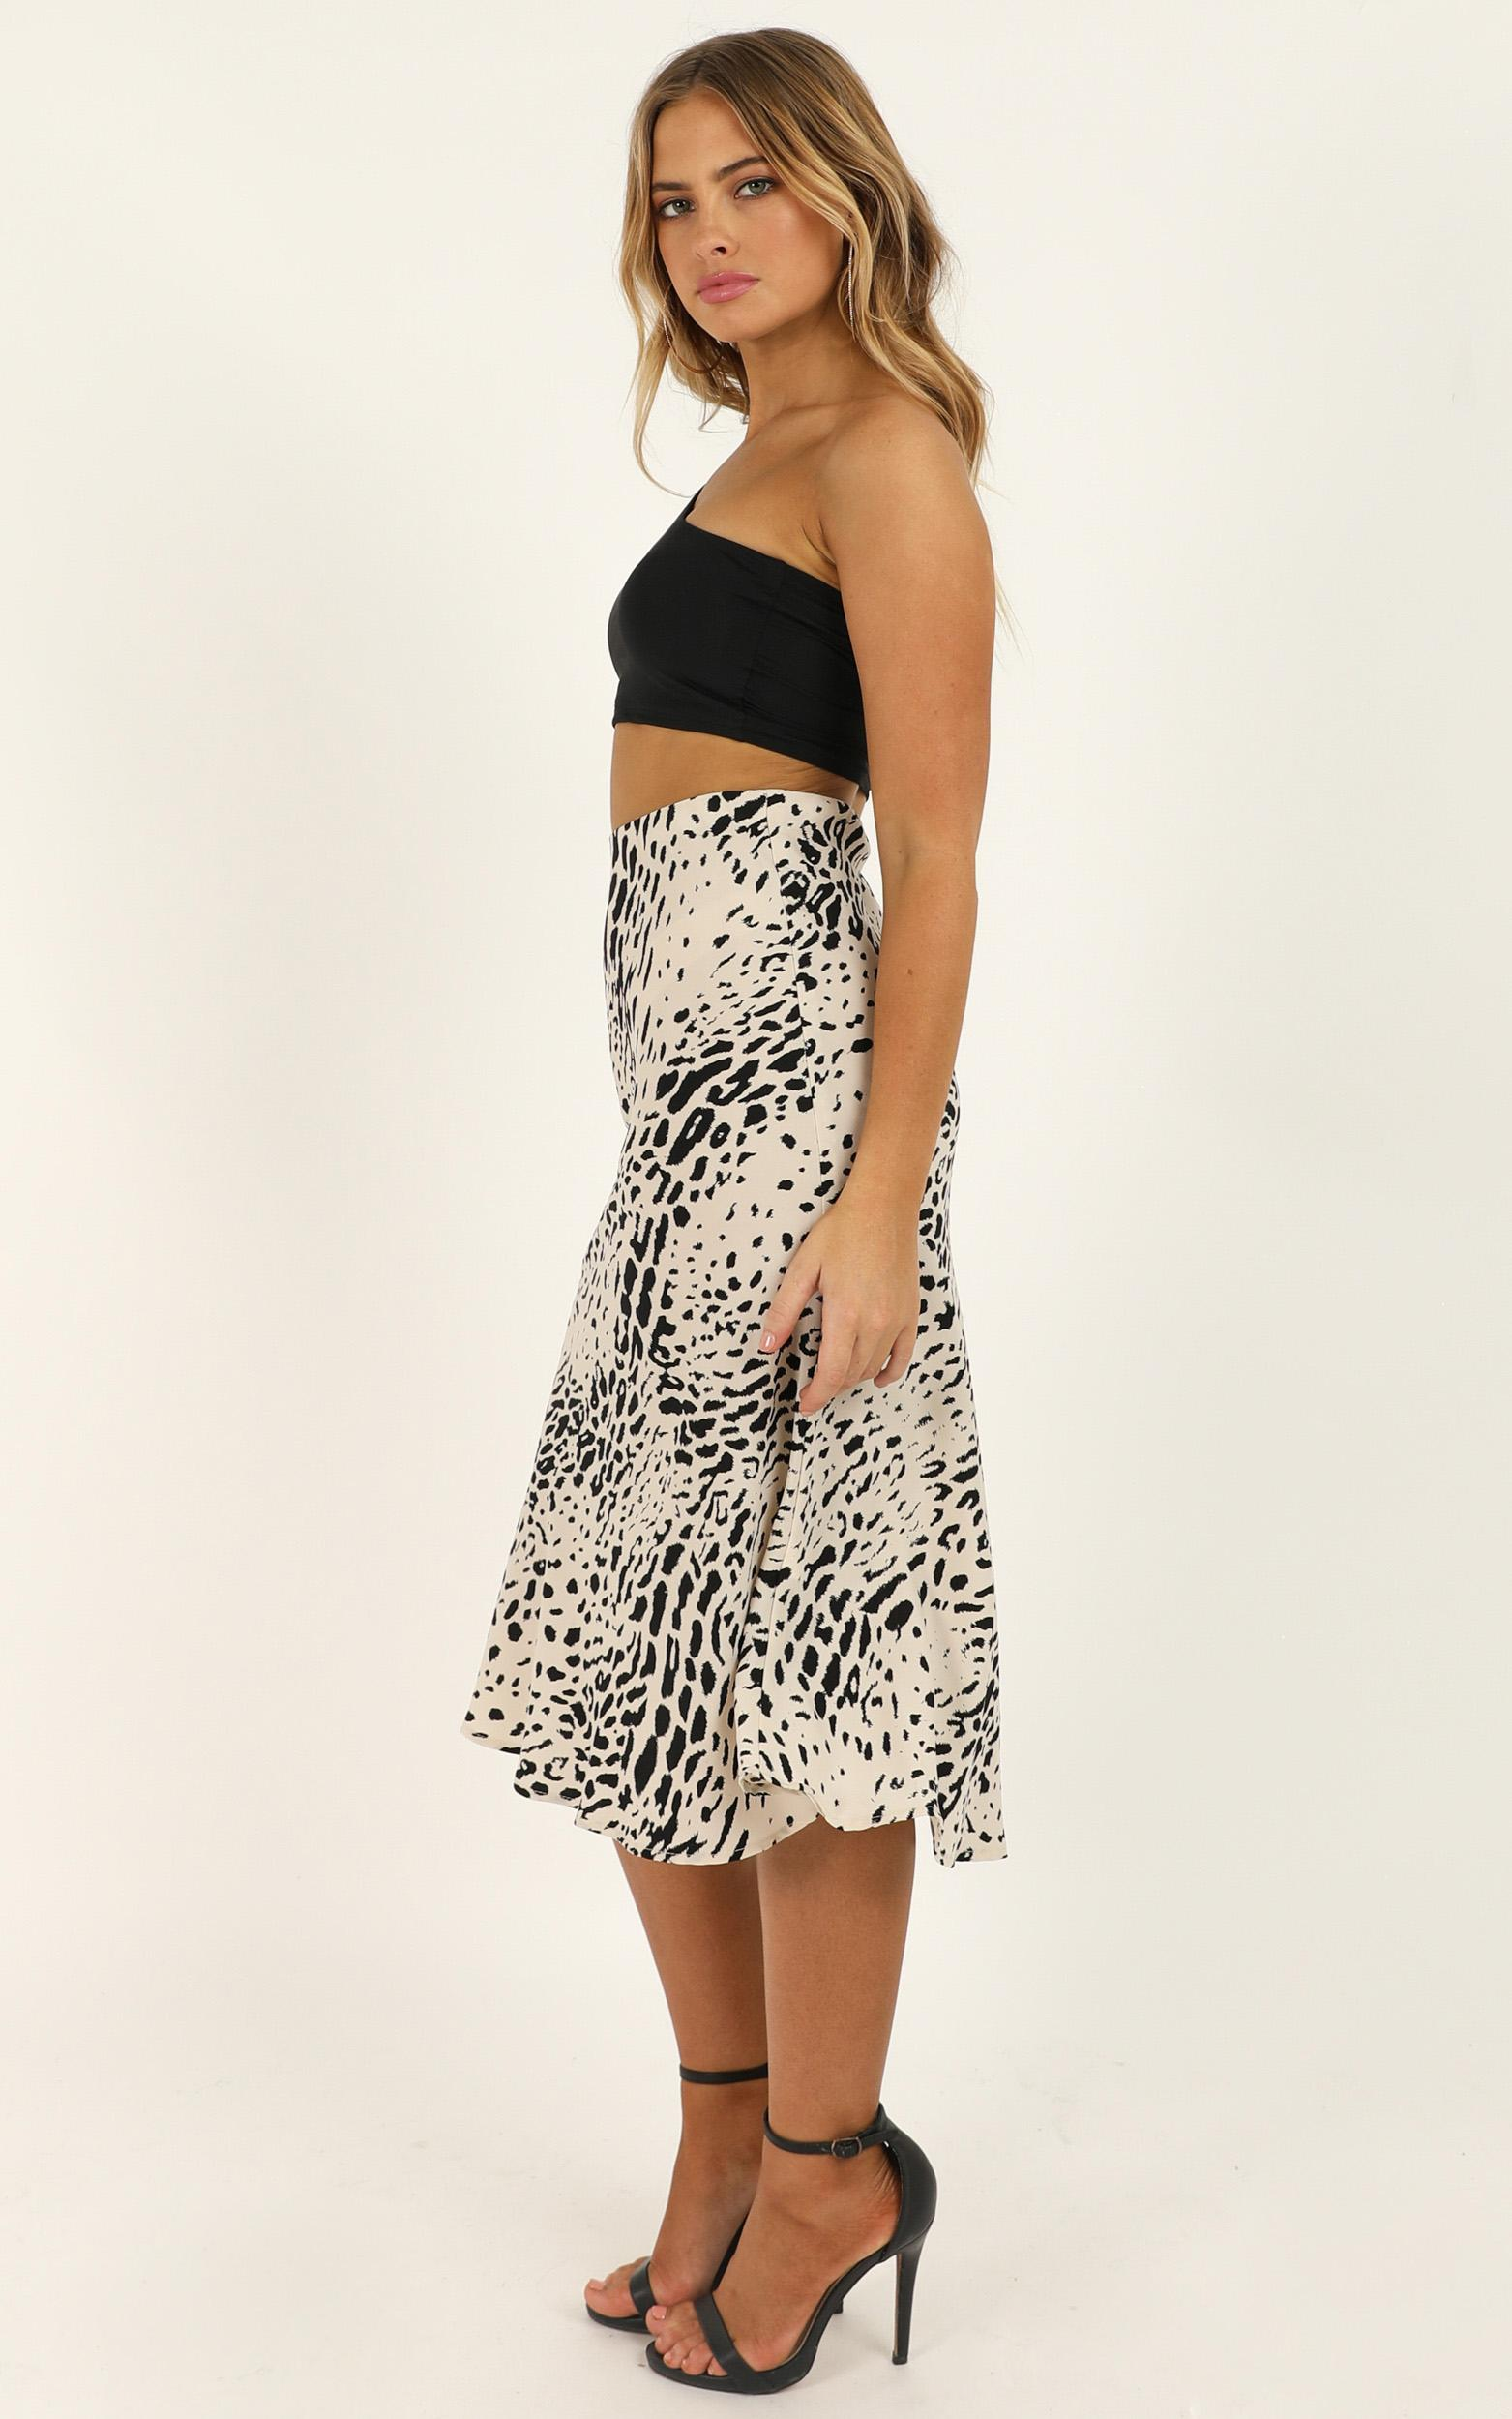 Consuming Thoughts Skirt In Leopard Print Satin - 16 (XXL), White, hi-res image number null